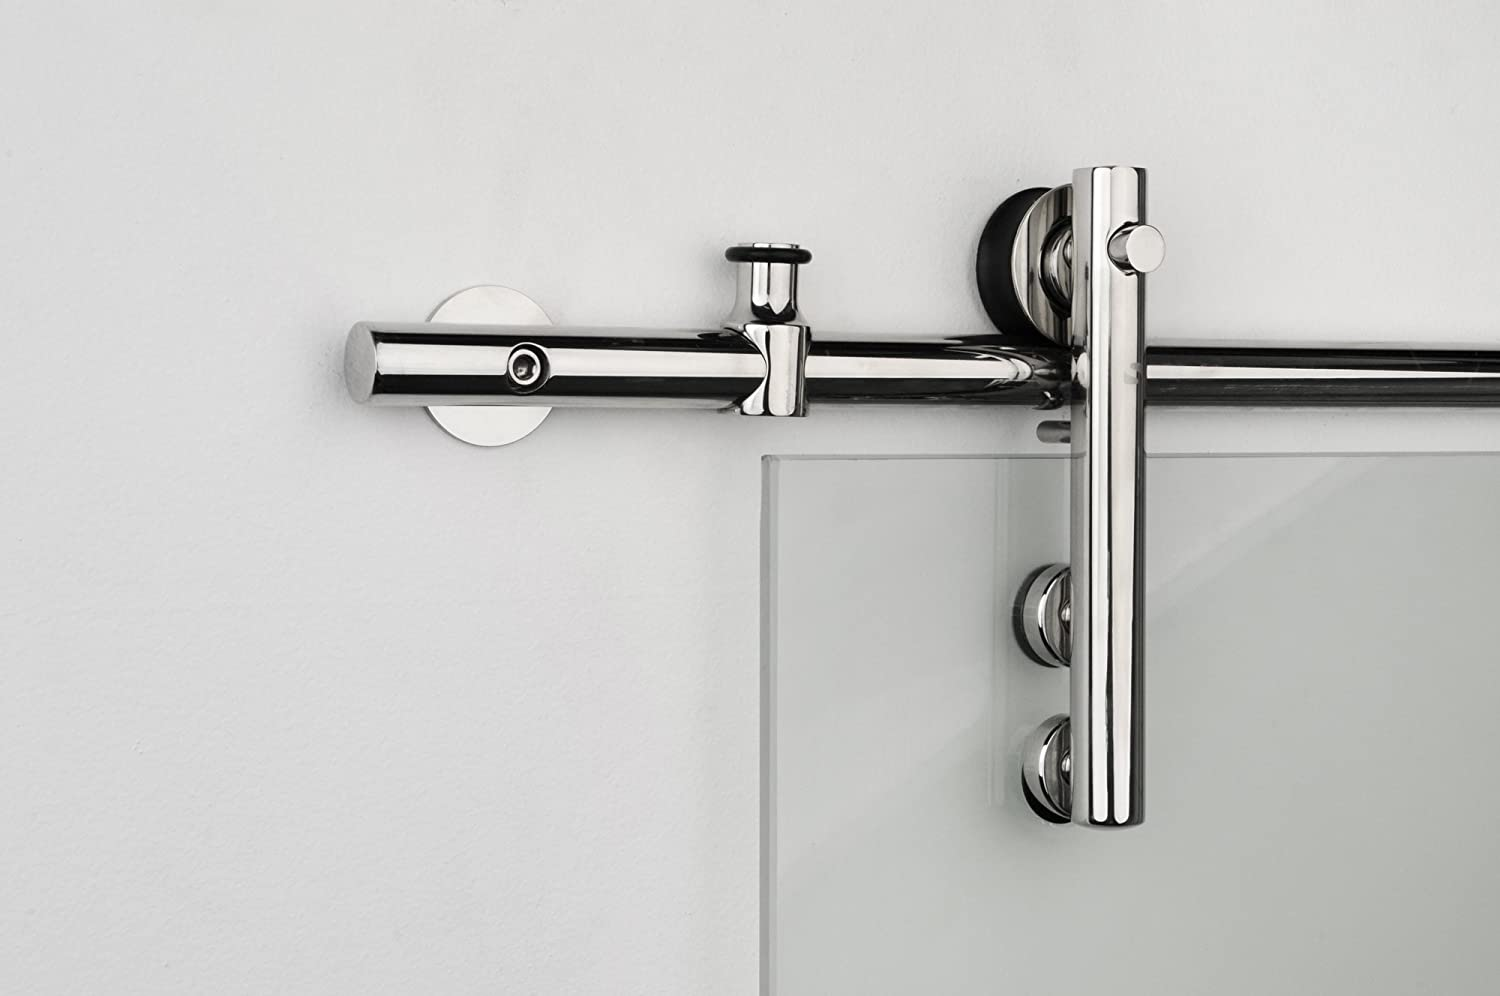 STRONGAR Contemporary Stainless Steel Max 84% OFF Door Hardware Sliding Max 84% OFF Barn